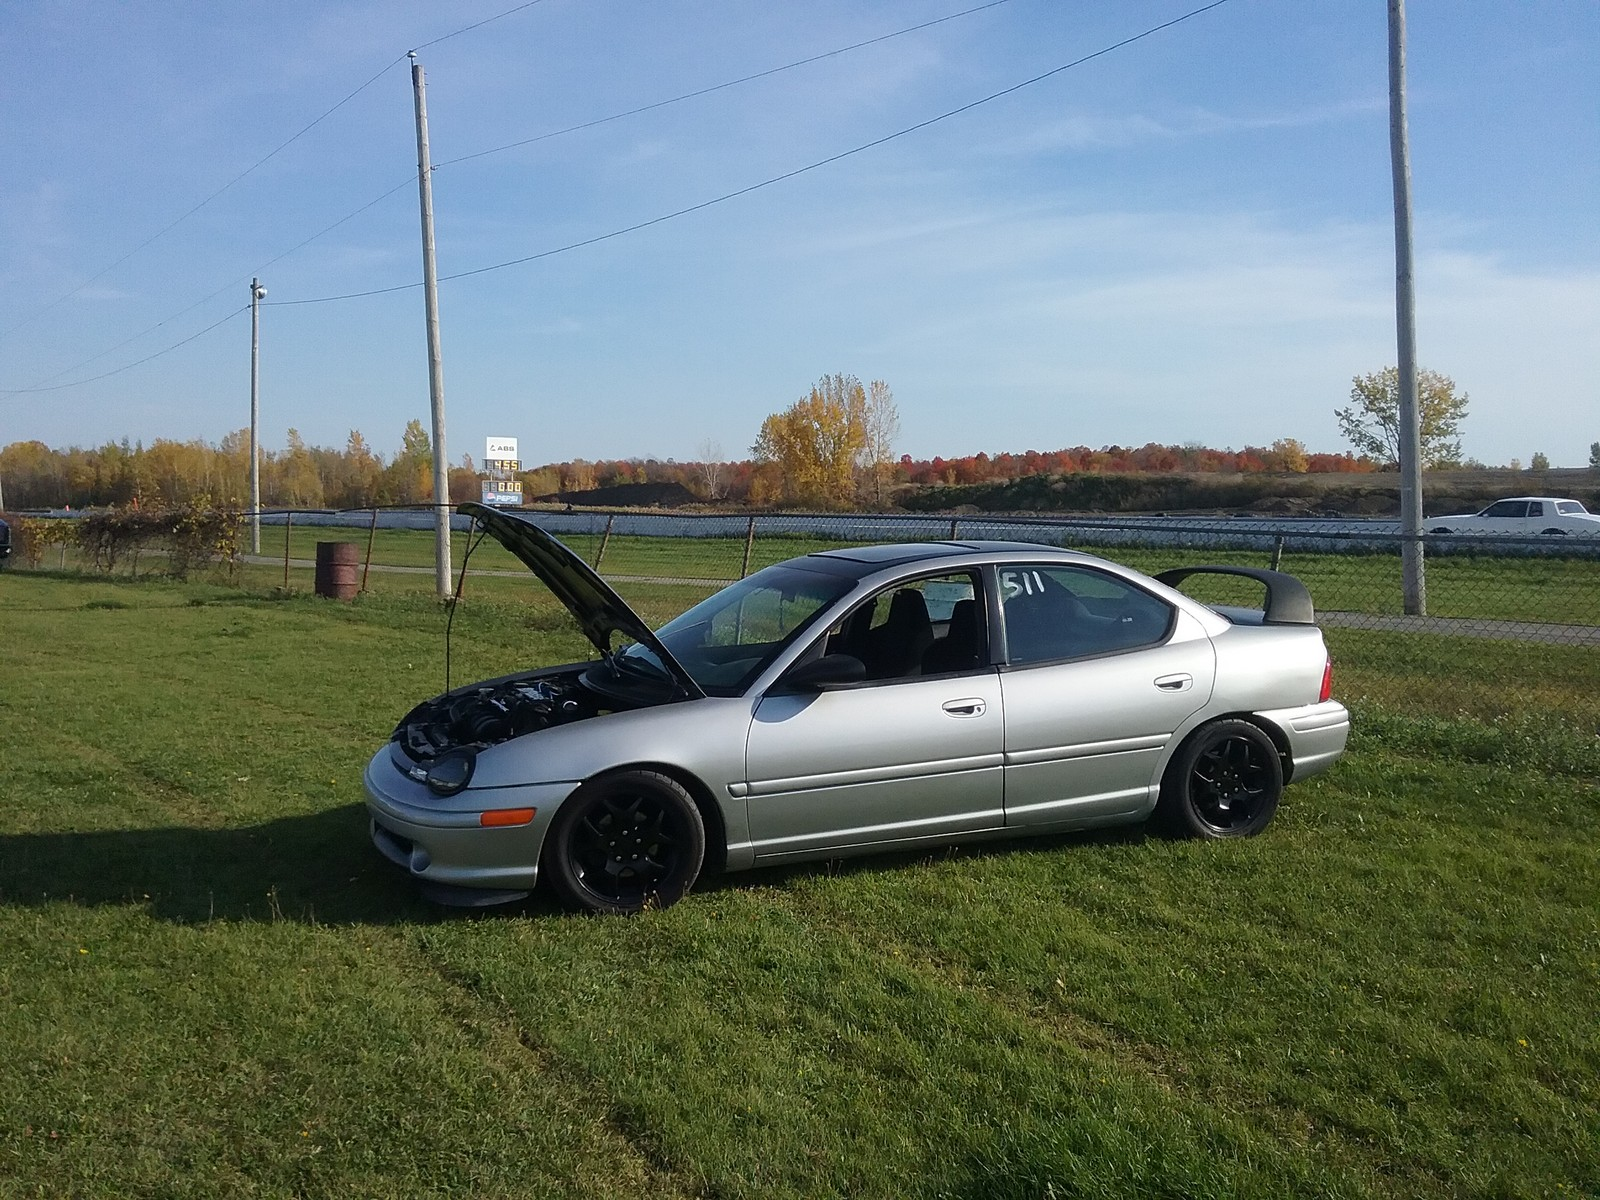 1998 Silver  Dodge Neon Sport sedan picture, mods, upgrades